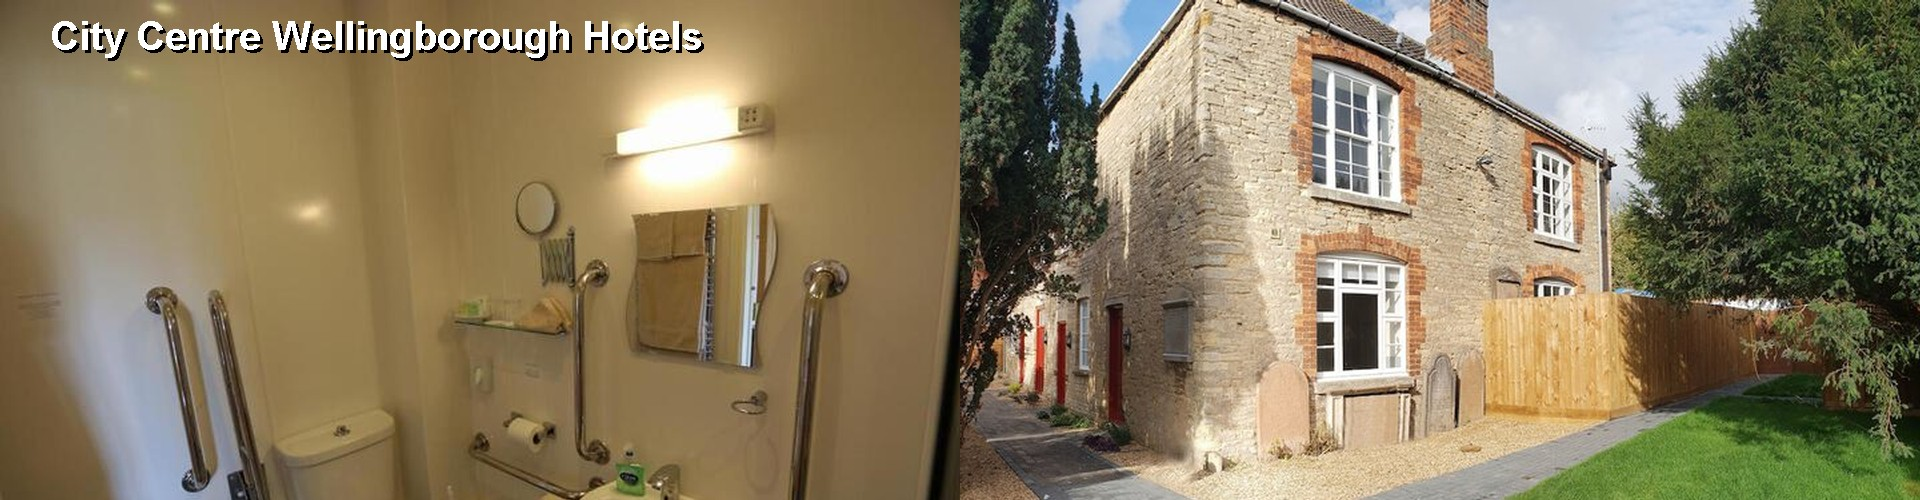 3 Best Hotels near City Centre Wellingborough